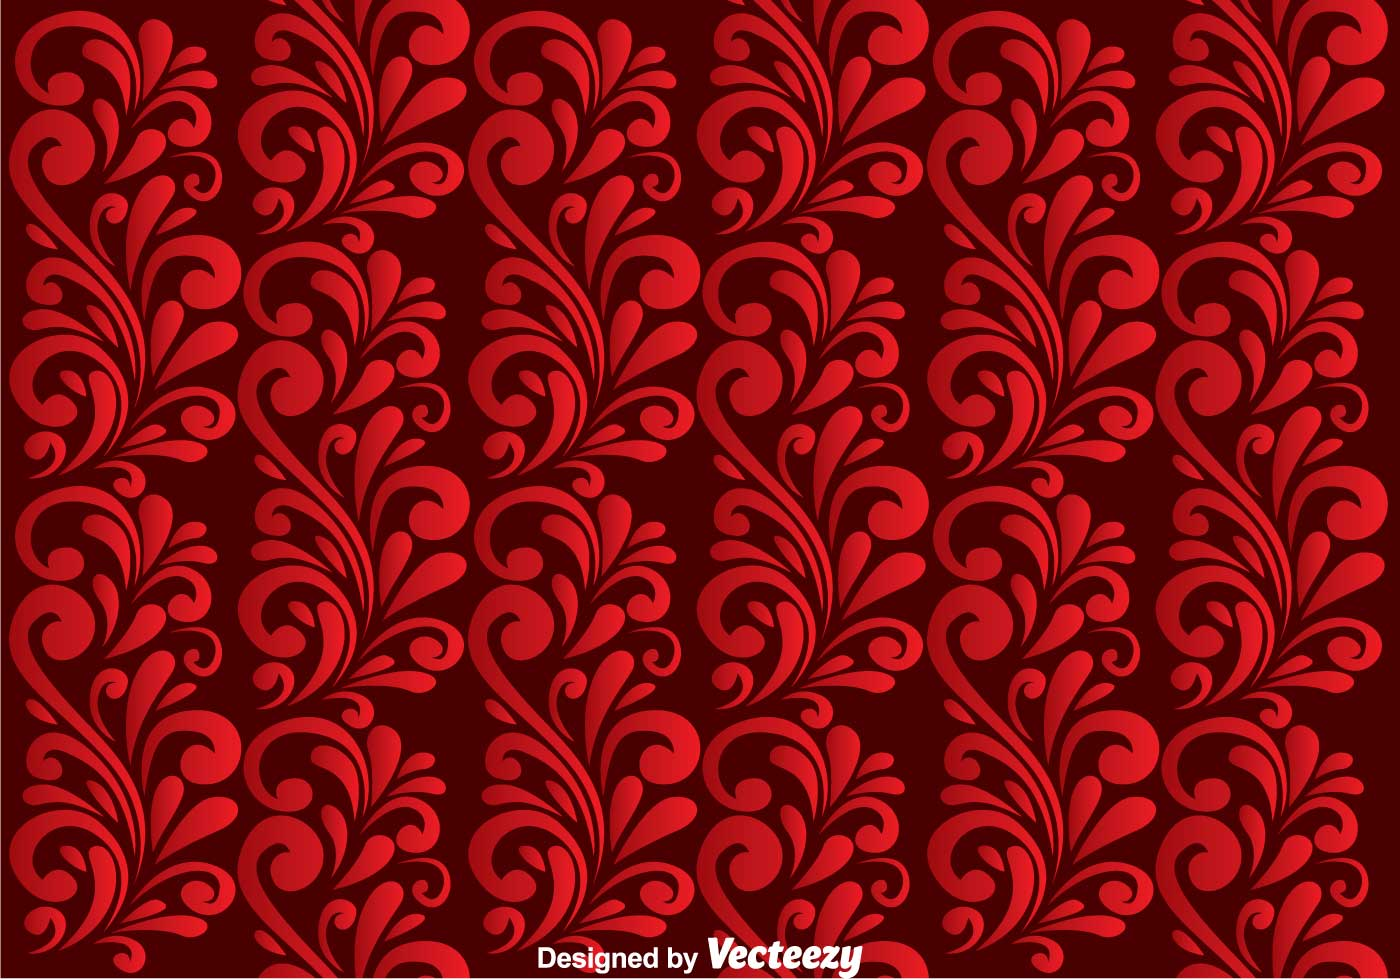 Red Swirly Background - Download Free Vector Art, Stock ...